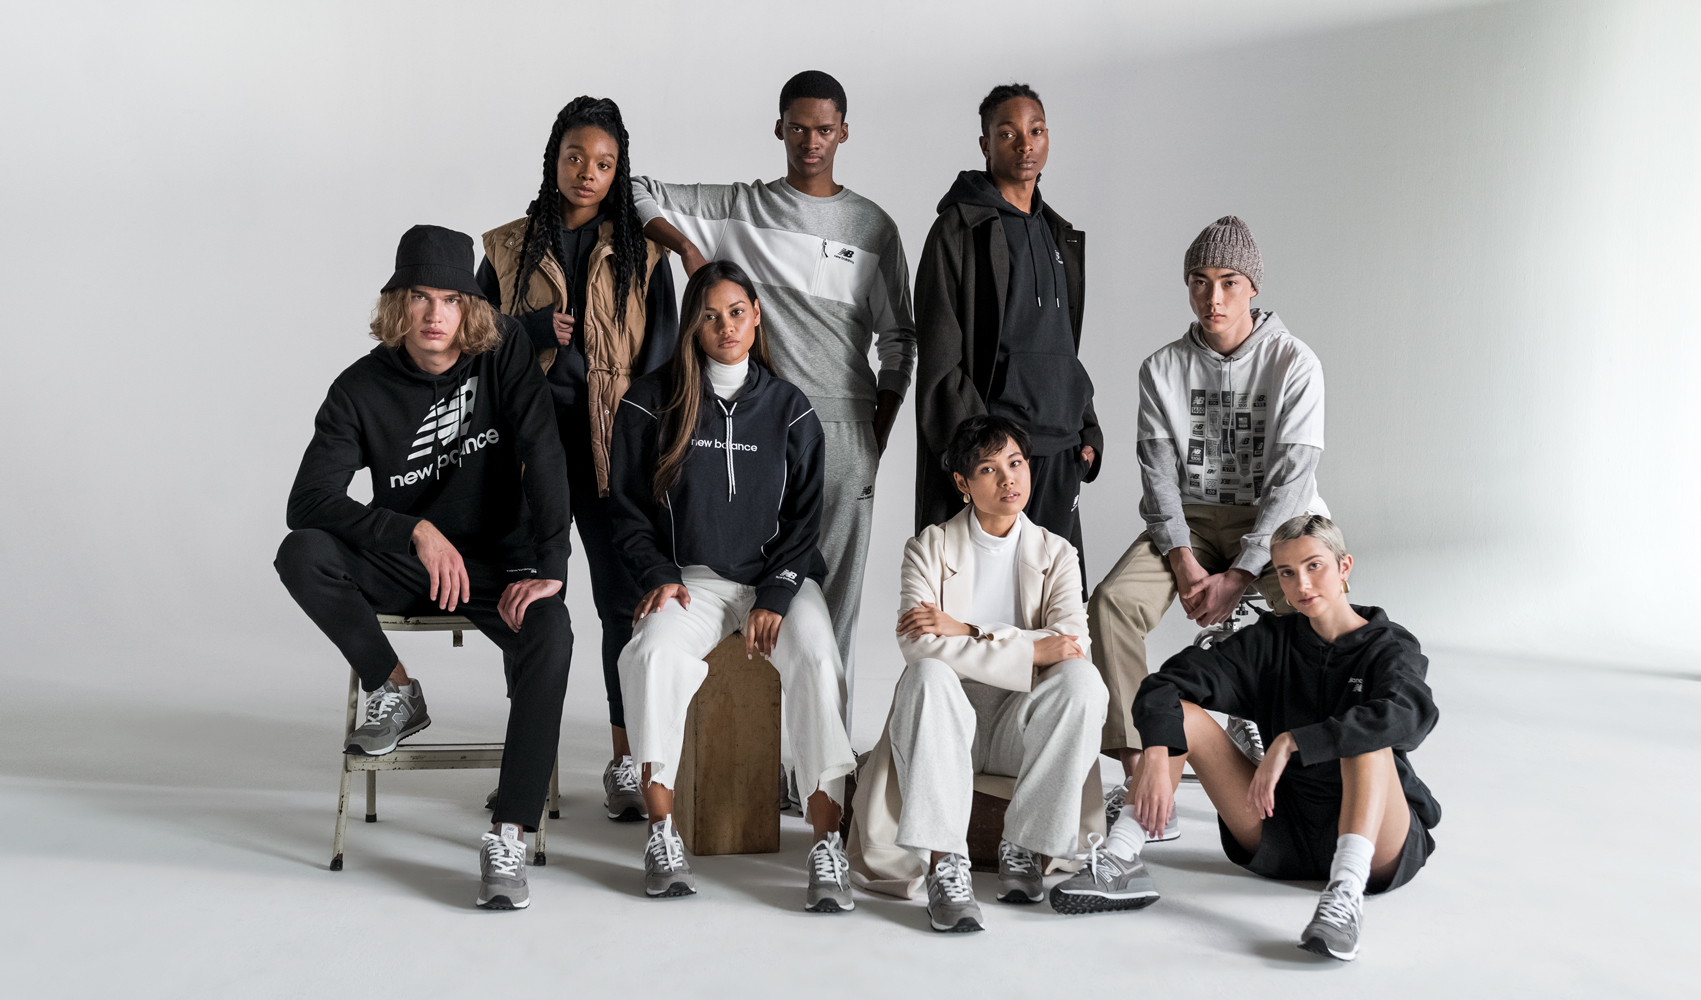 New Balance Celebrates its Heritage with Annual Grey Day Collection